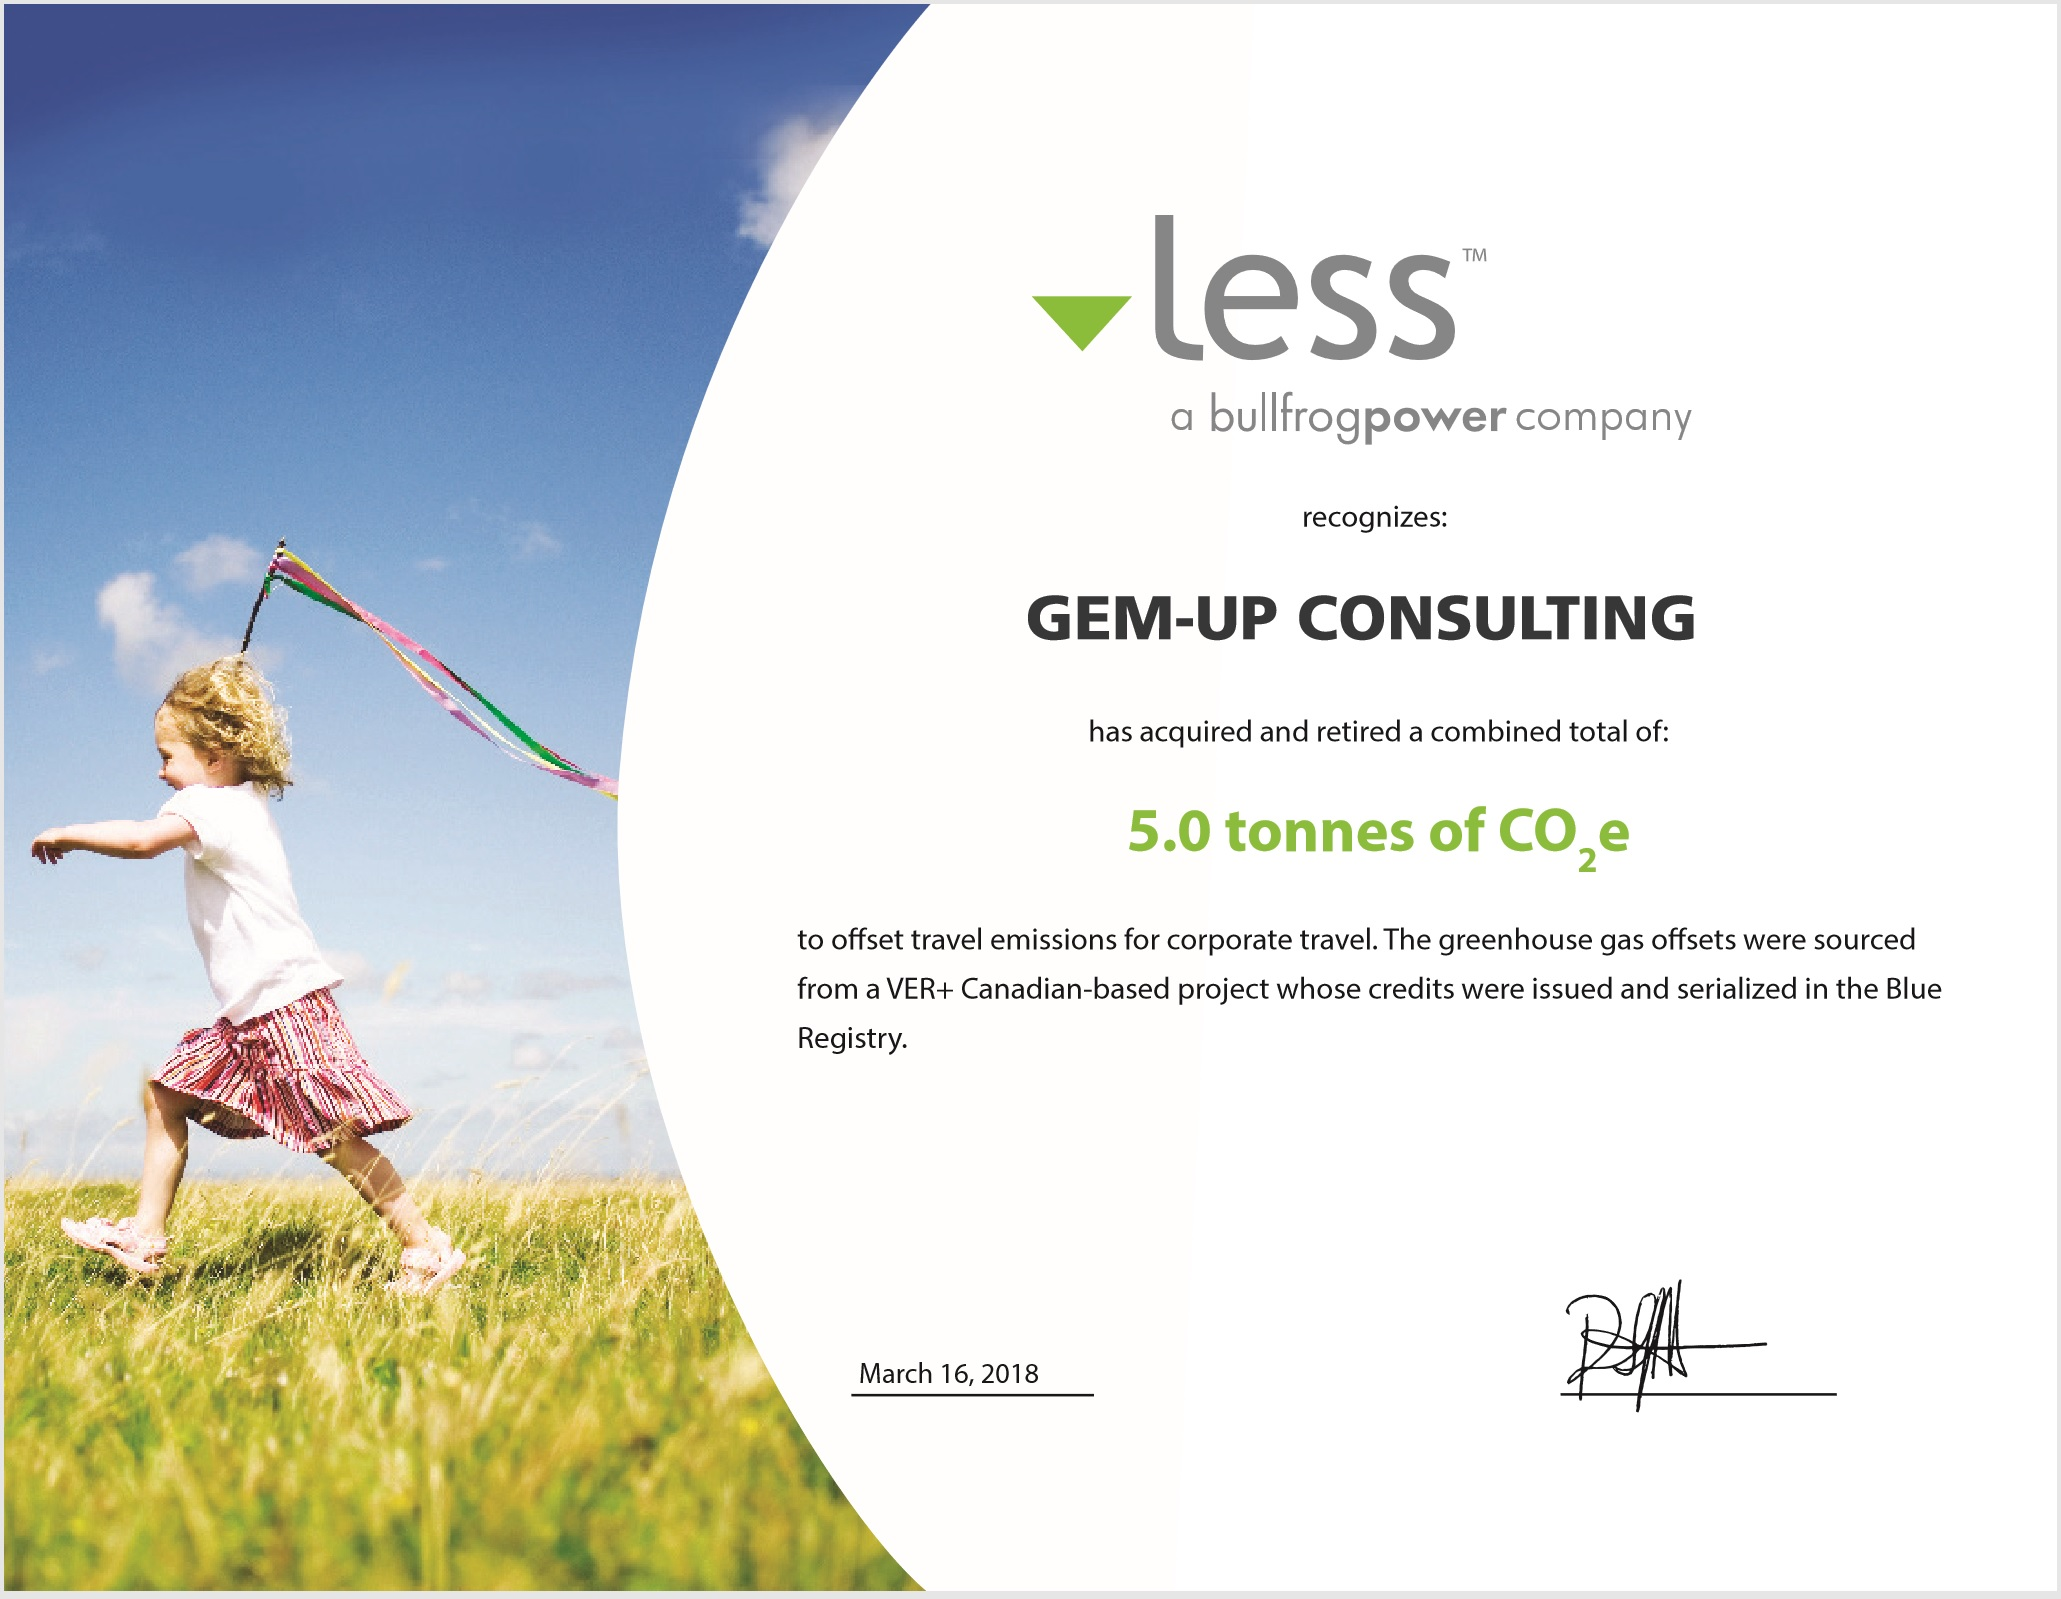 Another Carbon Offset Certificate to keep us at Carbon Neutrality